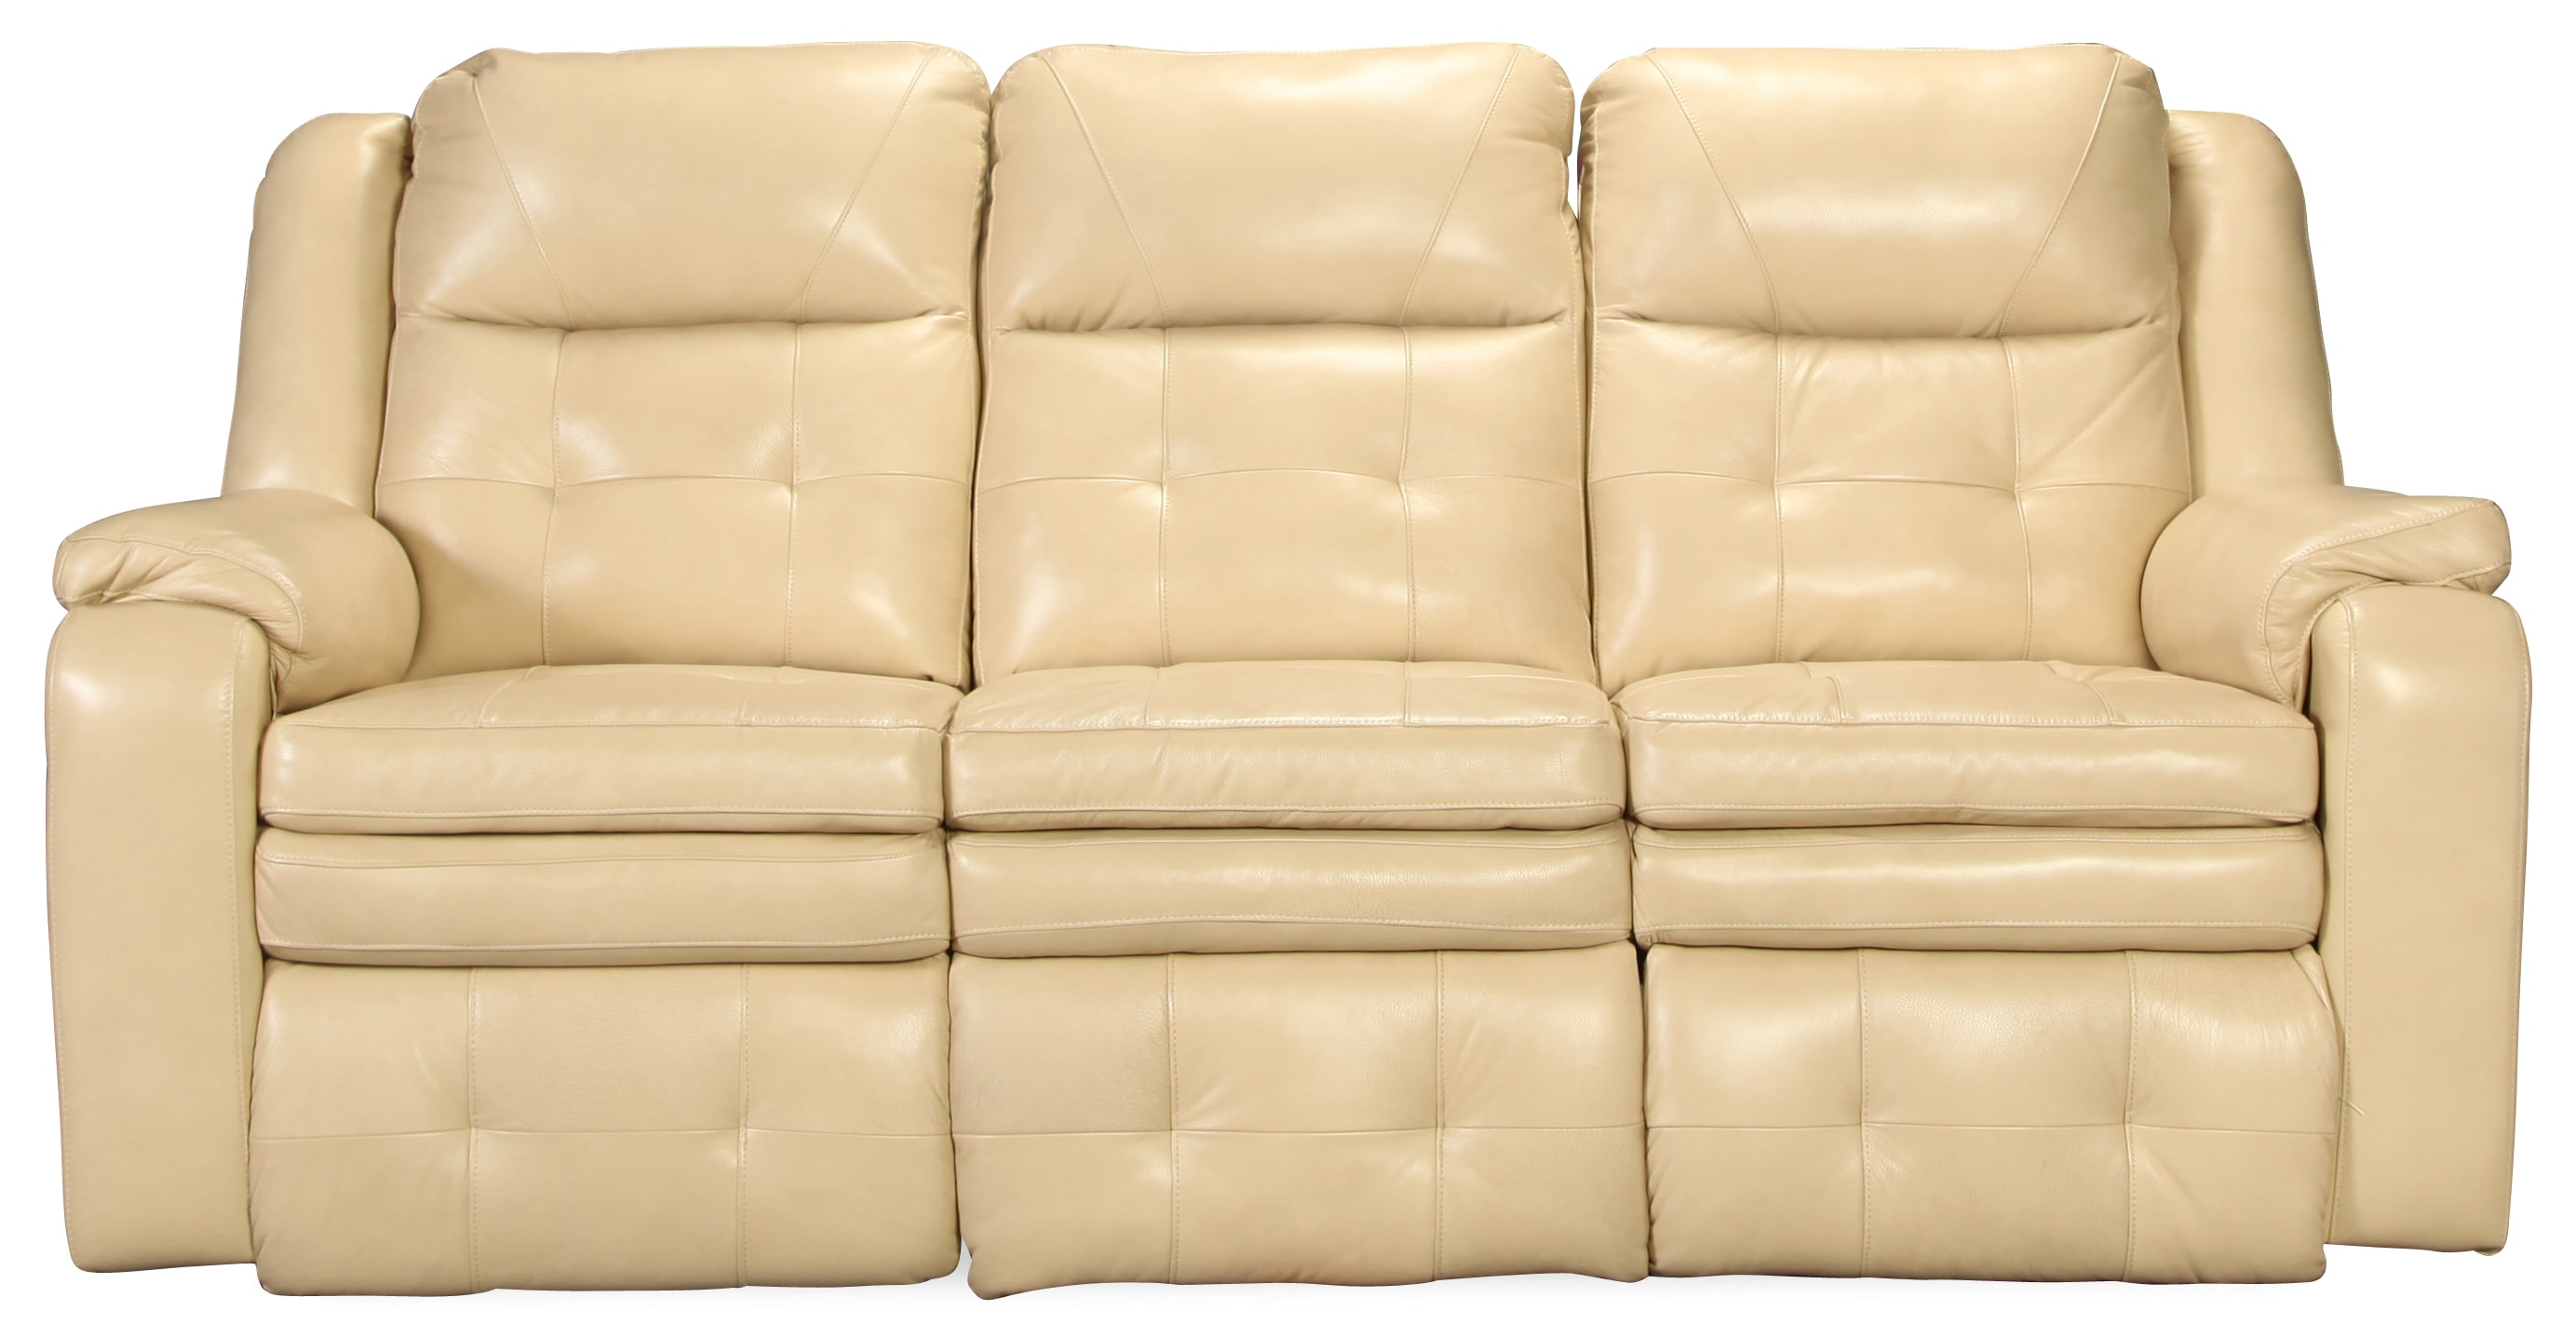 Paola Power Reclining Sofa - Beach